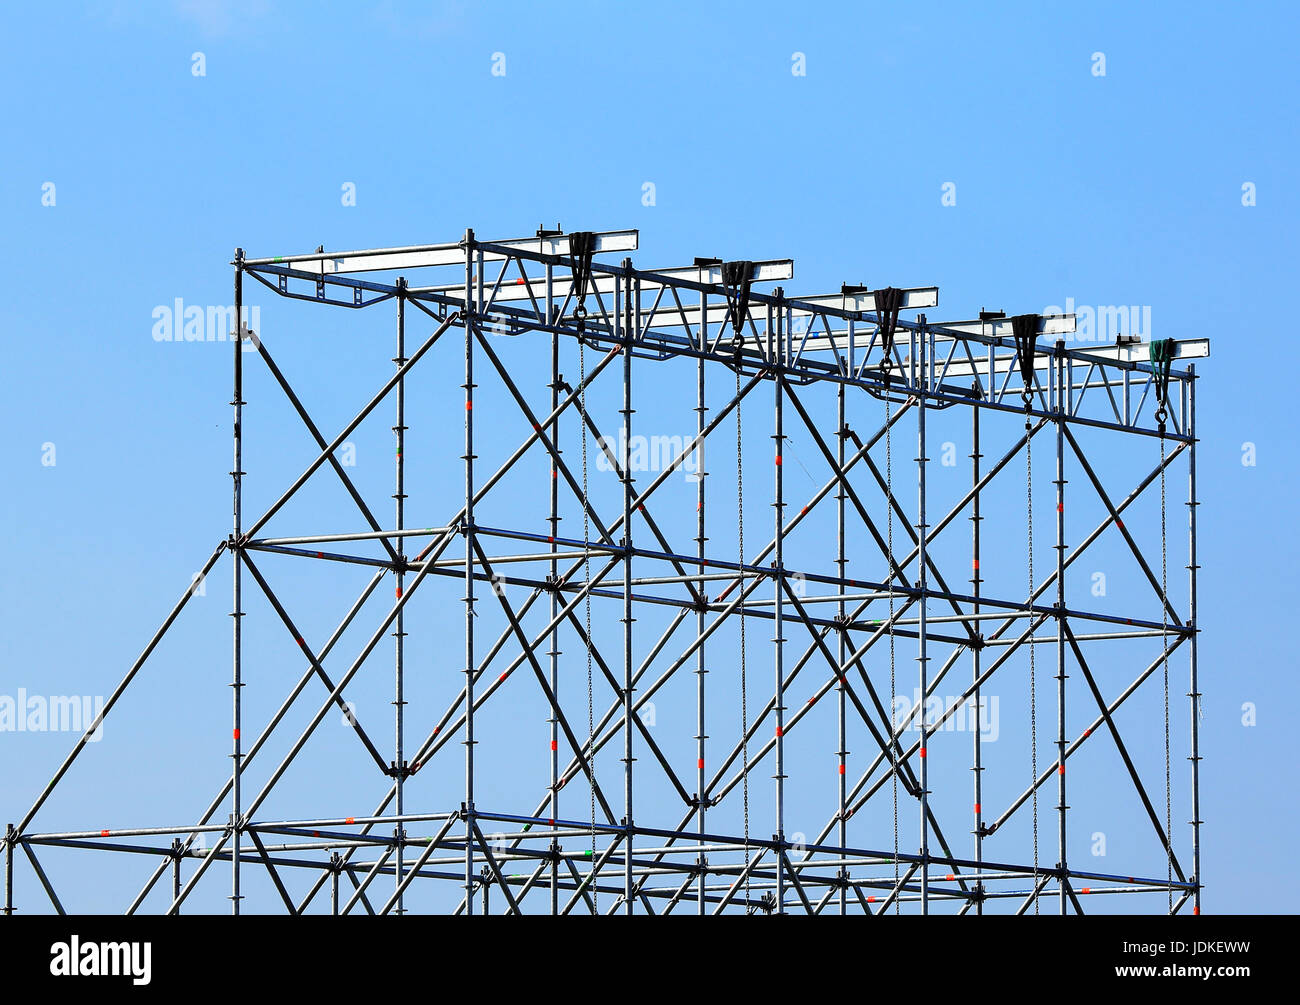 Rectangular structure made of interconnected metal beams - Stock Image